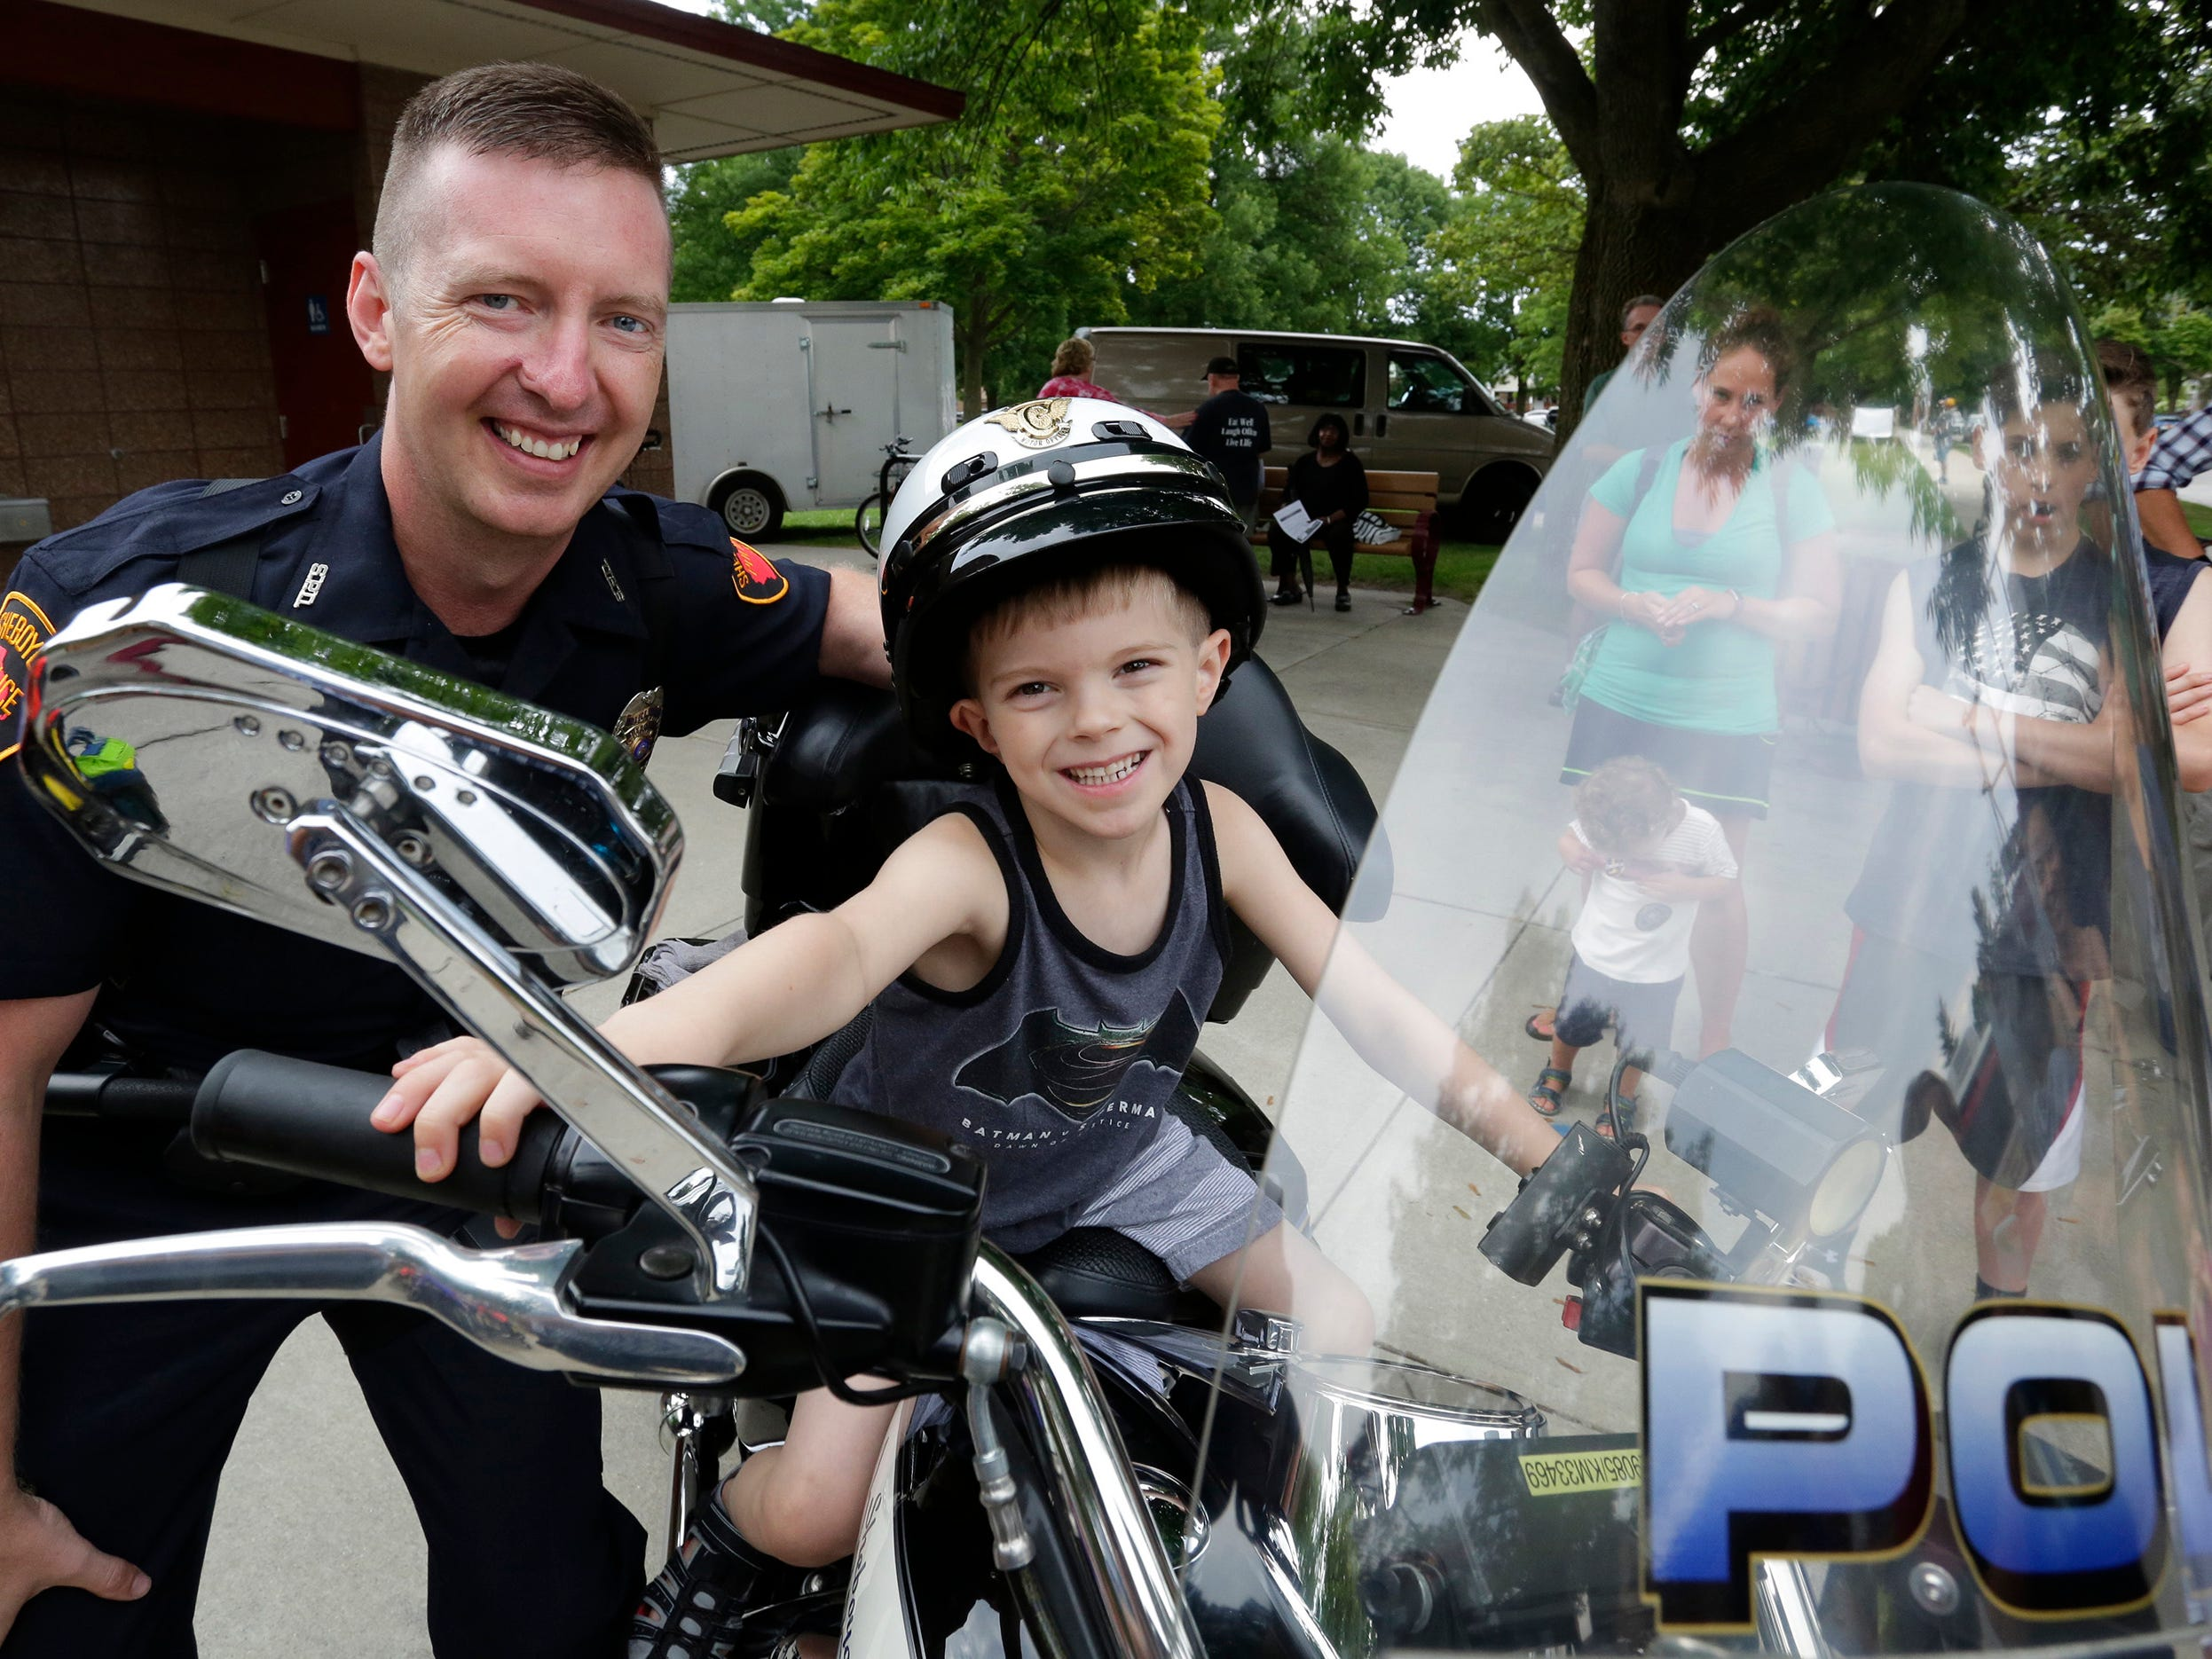 Sheboygan Police Department Motorcycle officer Dustin Fickett, left, smiles with Brady Stelter, during National Night Out at End Park, Tuesday, August 7, 2018, in Sheboygan, Wis. National Night Out is a community-police awareness-raising event.